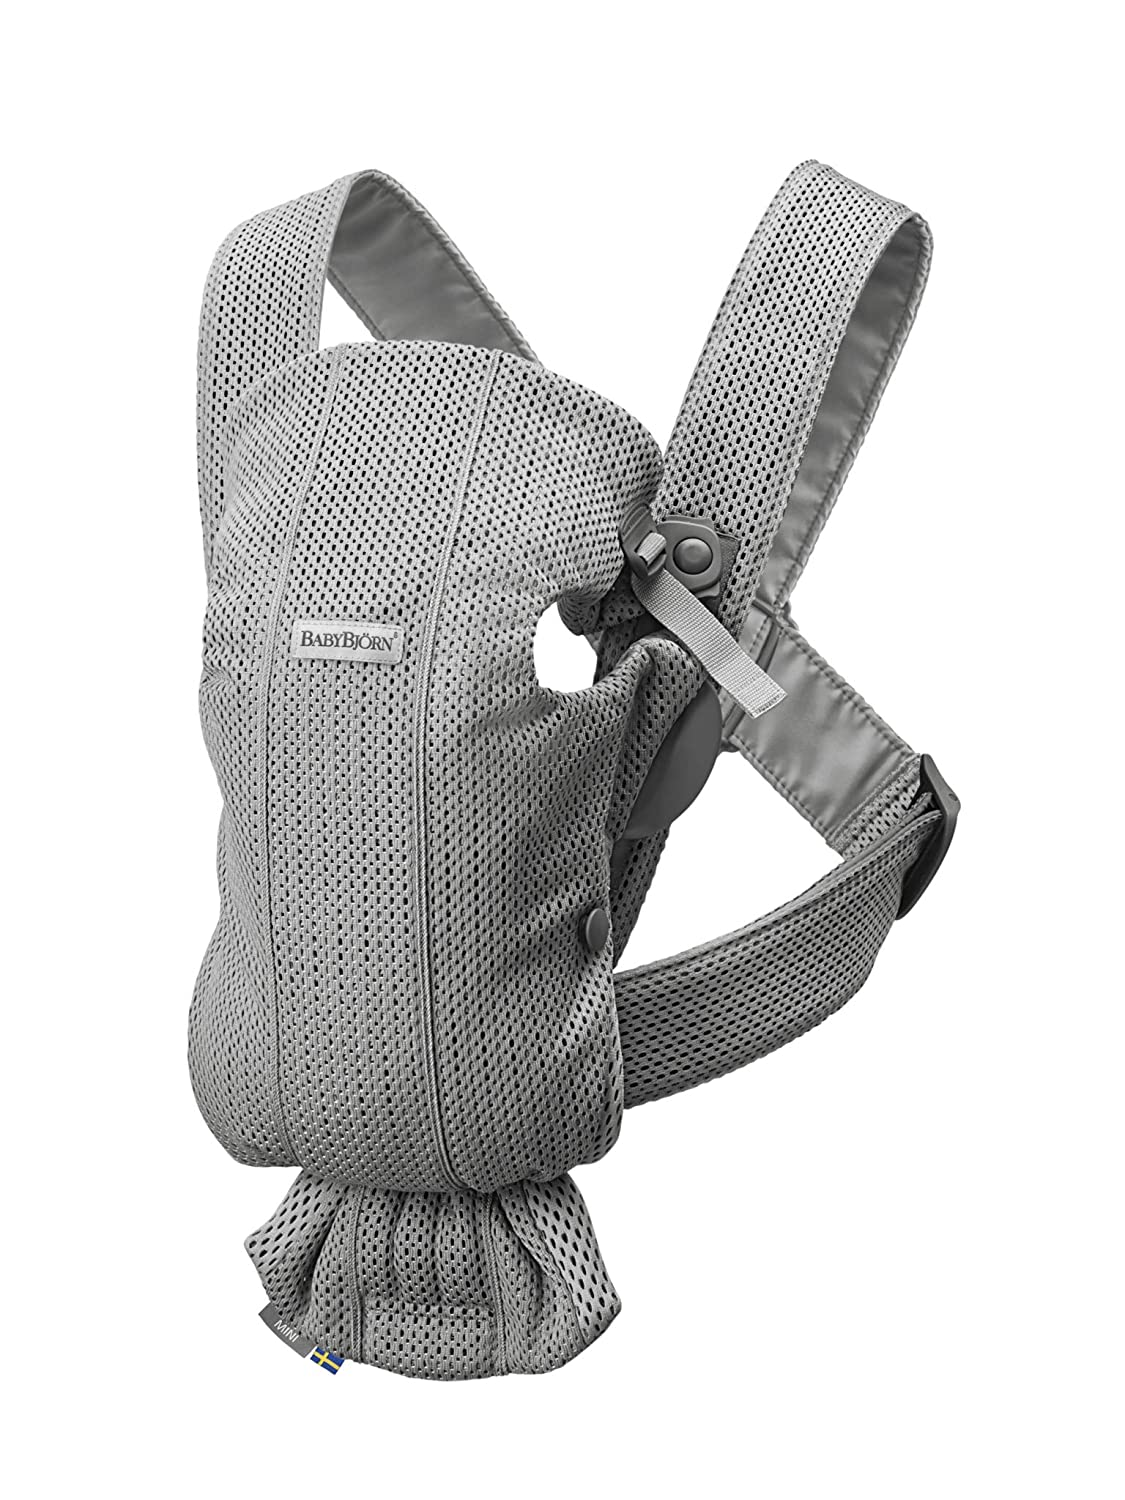 BABYBJÖRN Baby Carrier Mini, 3D Mesh, Gray